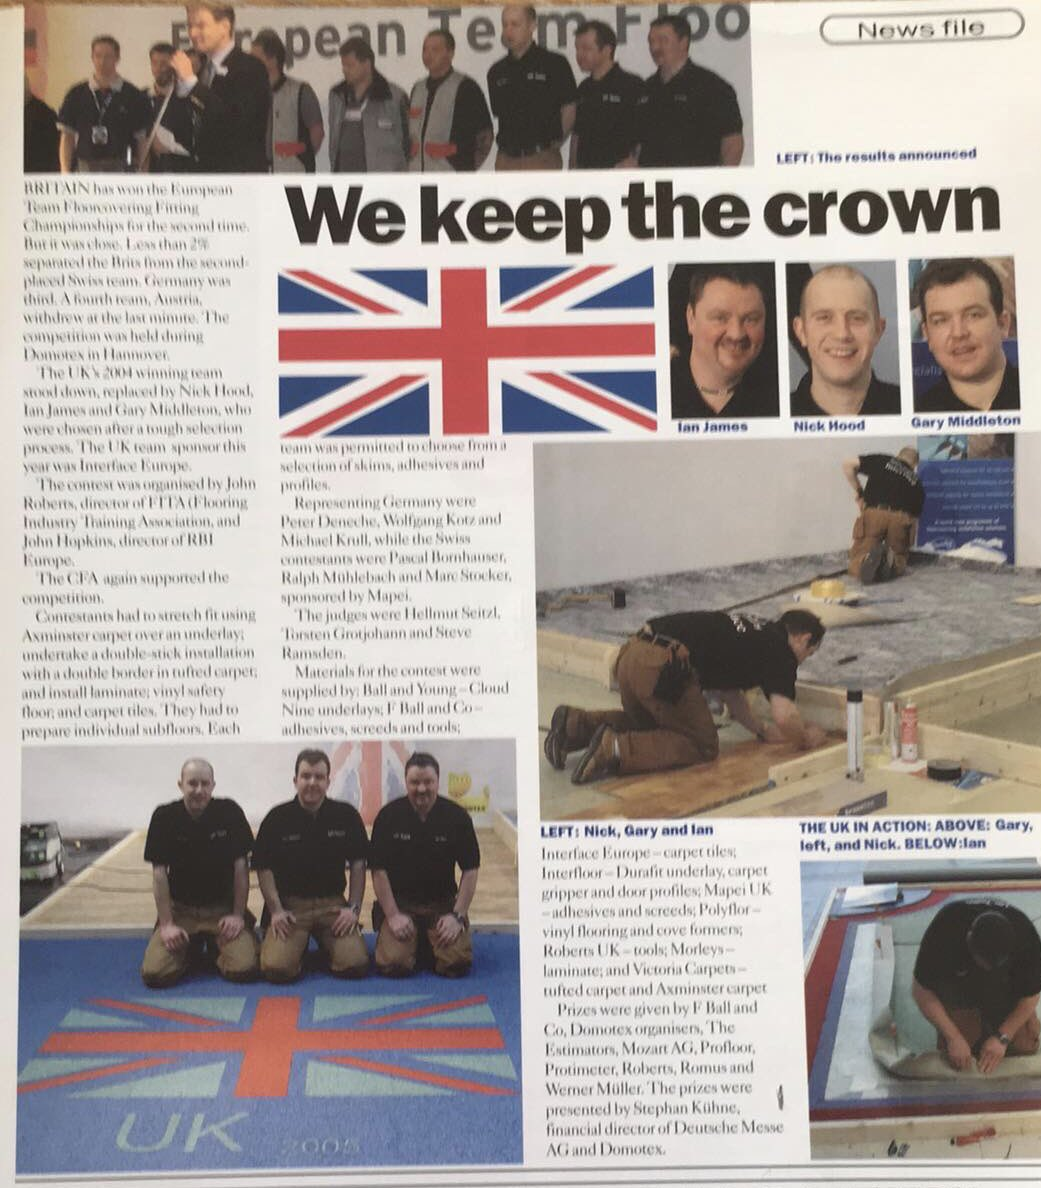 The 2004 UK winning team at the European floorlaying competition in Hanover Germany with Ian James, Mike whale and Garry Middleton @thenicf @CrescentCarpets